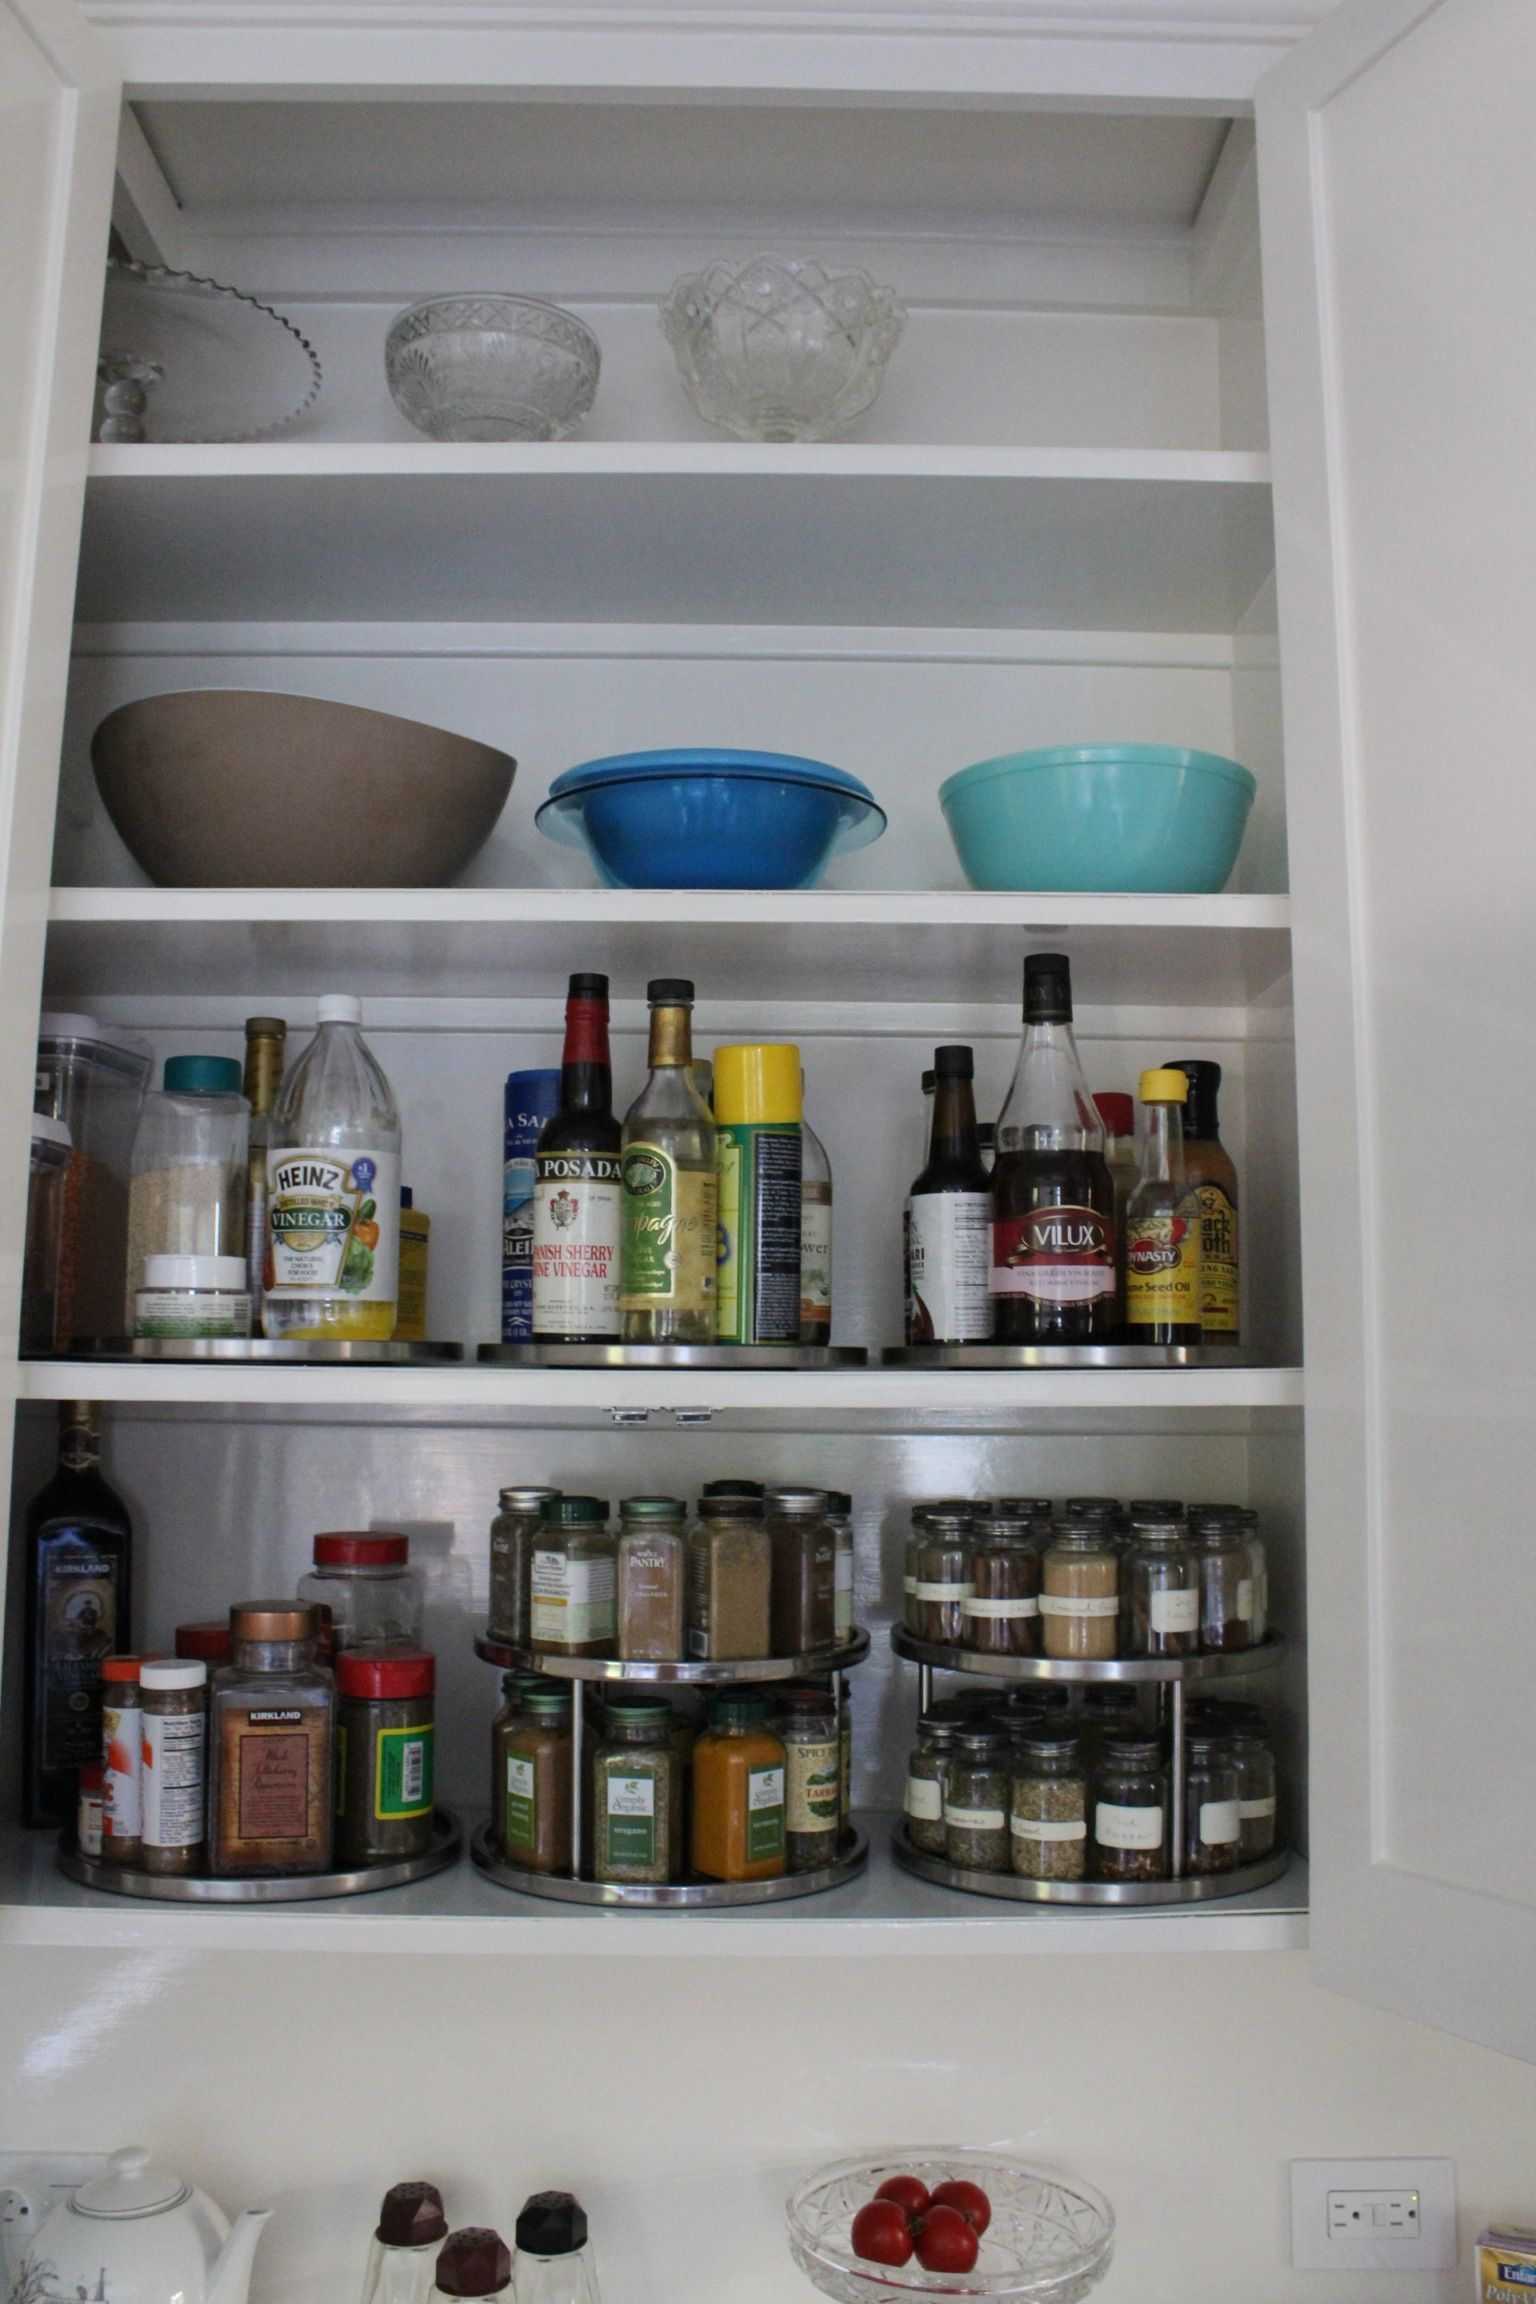 organized kitchen lazy susan great use with images kitchen organization kitchen on kitchen organization lazy susan id=44616